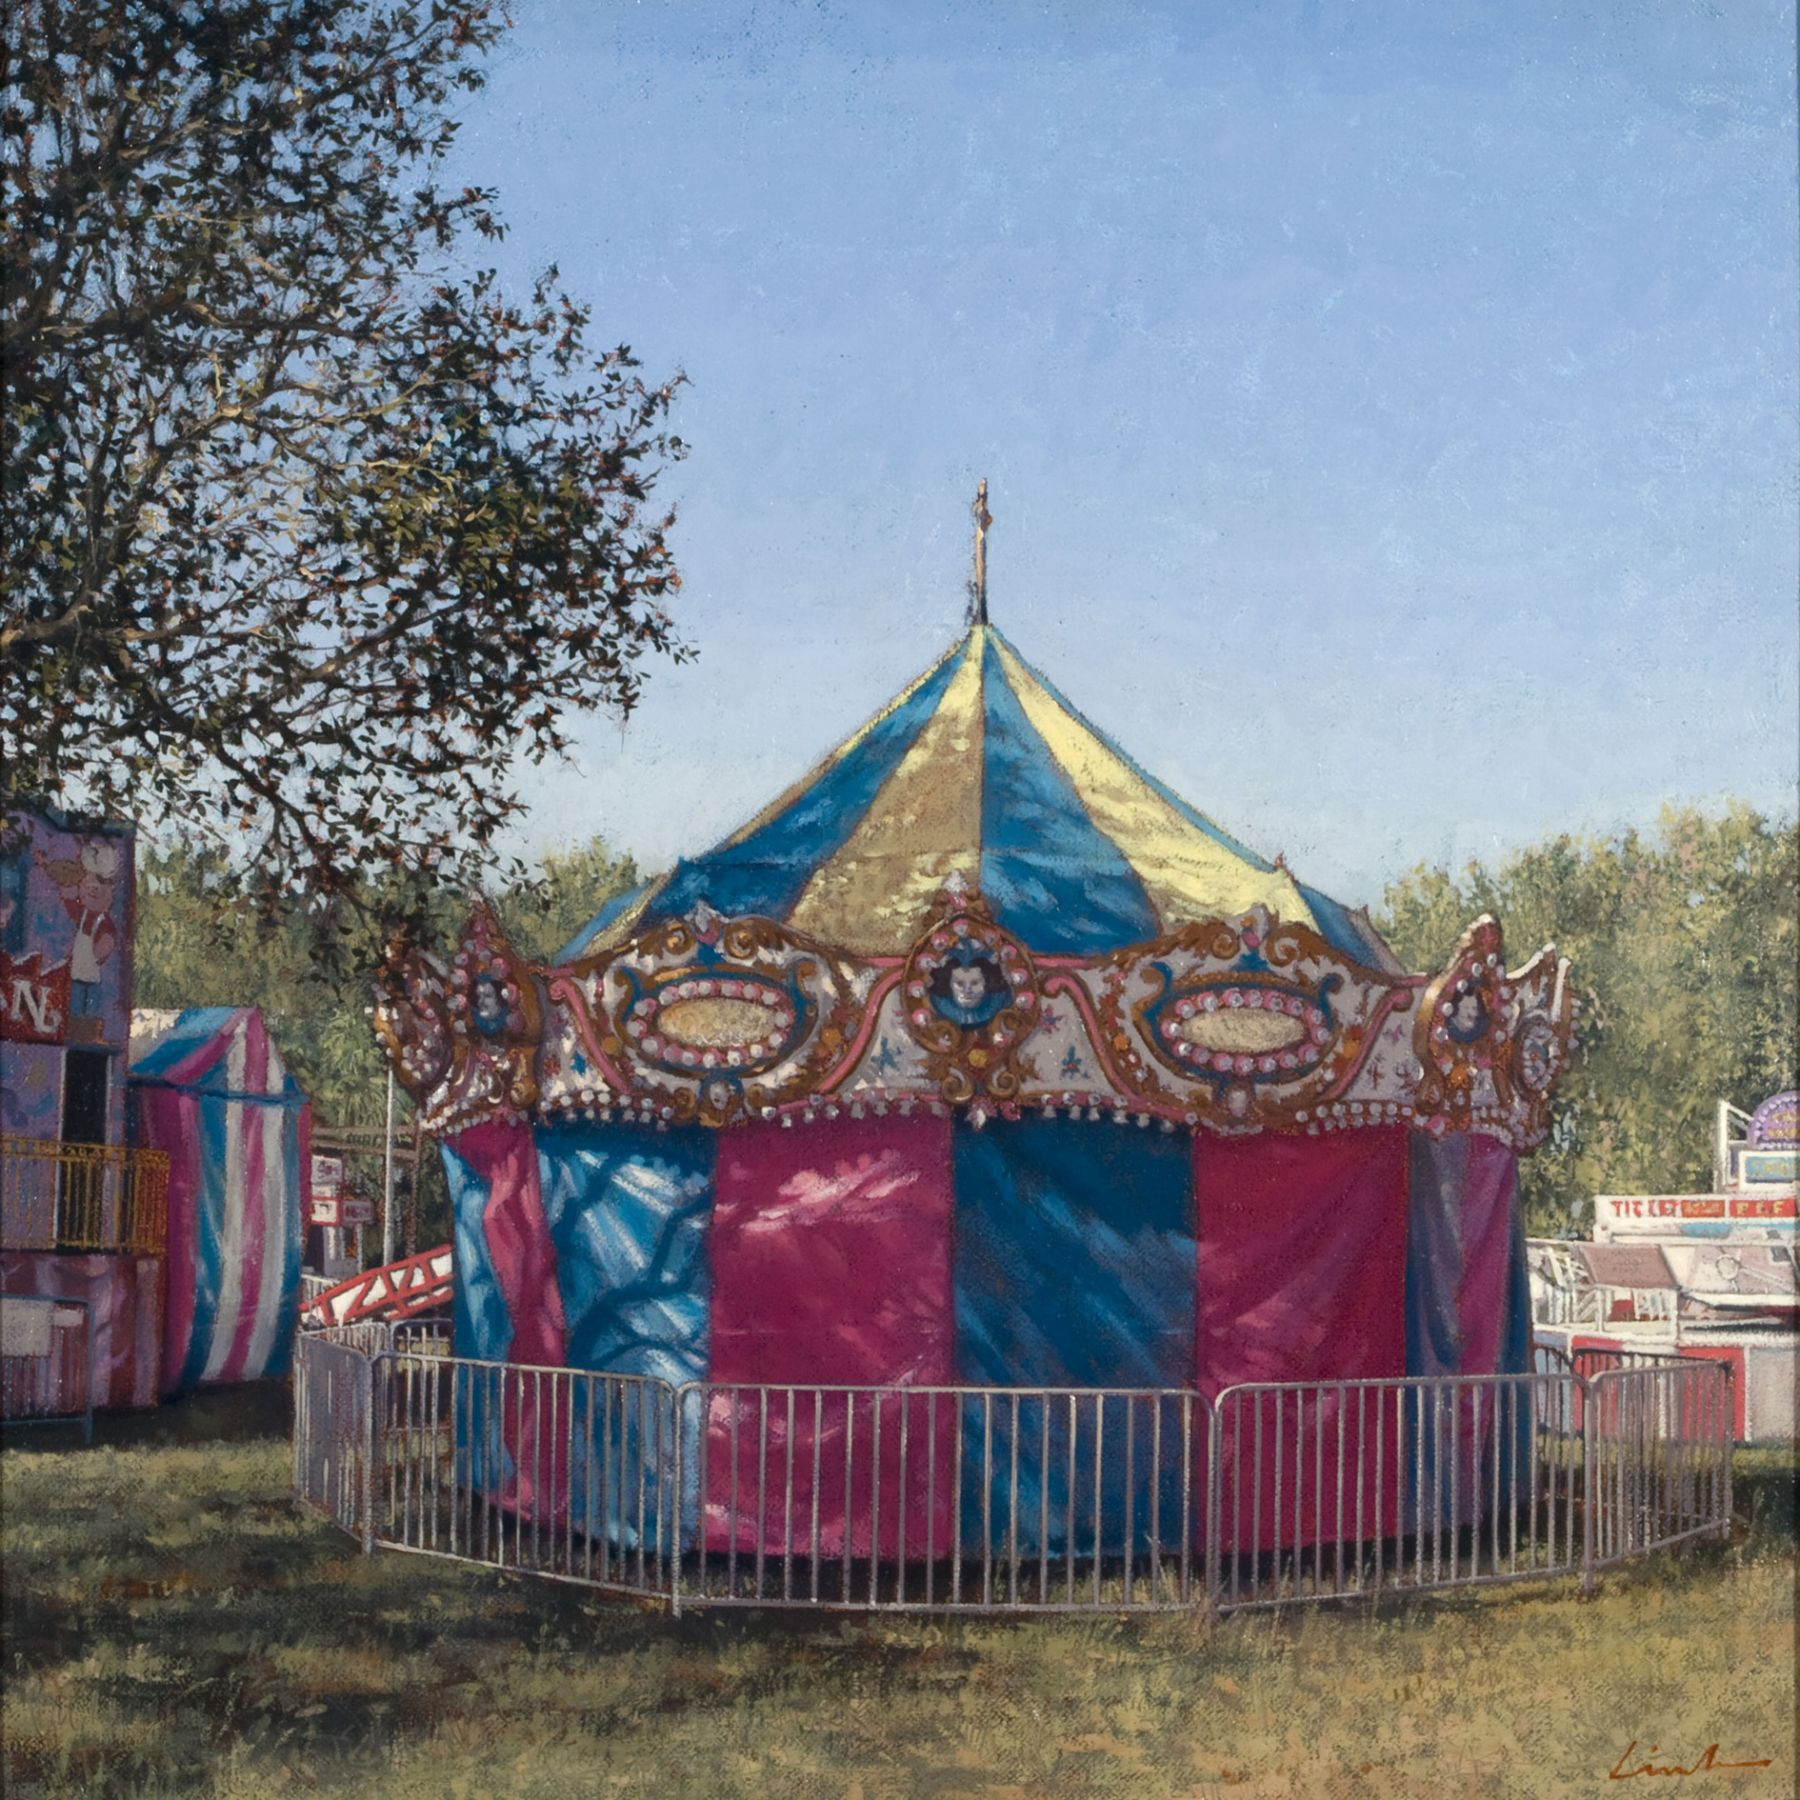 Linden Frederick, Fortunes (SOLD), 2007, oil on panel, 12 1/4 x 12 1/4 inches